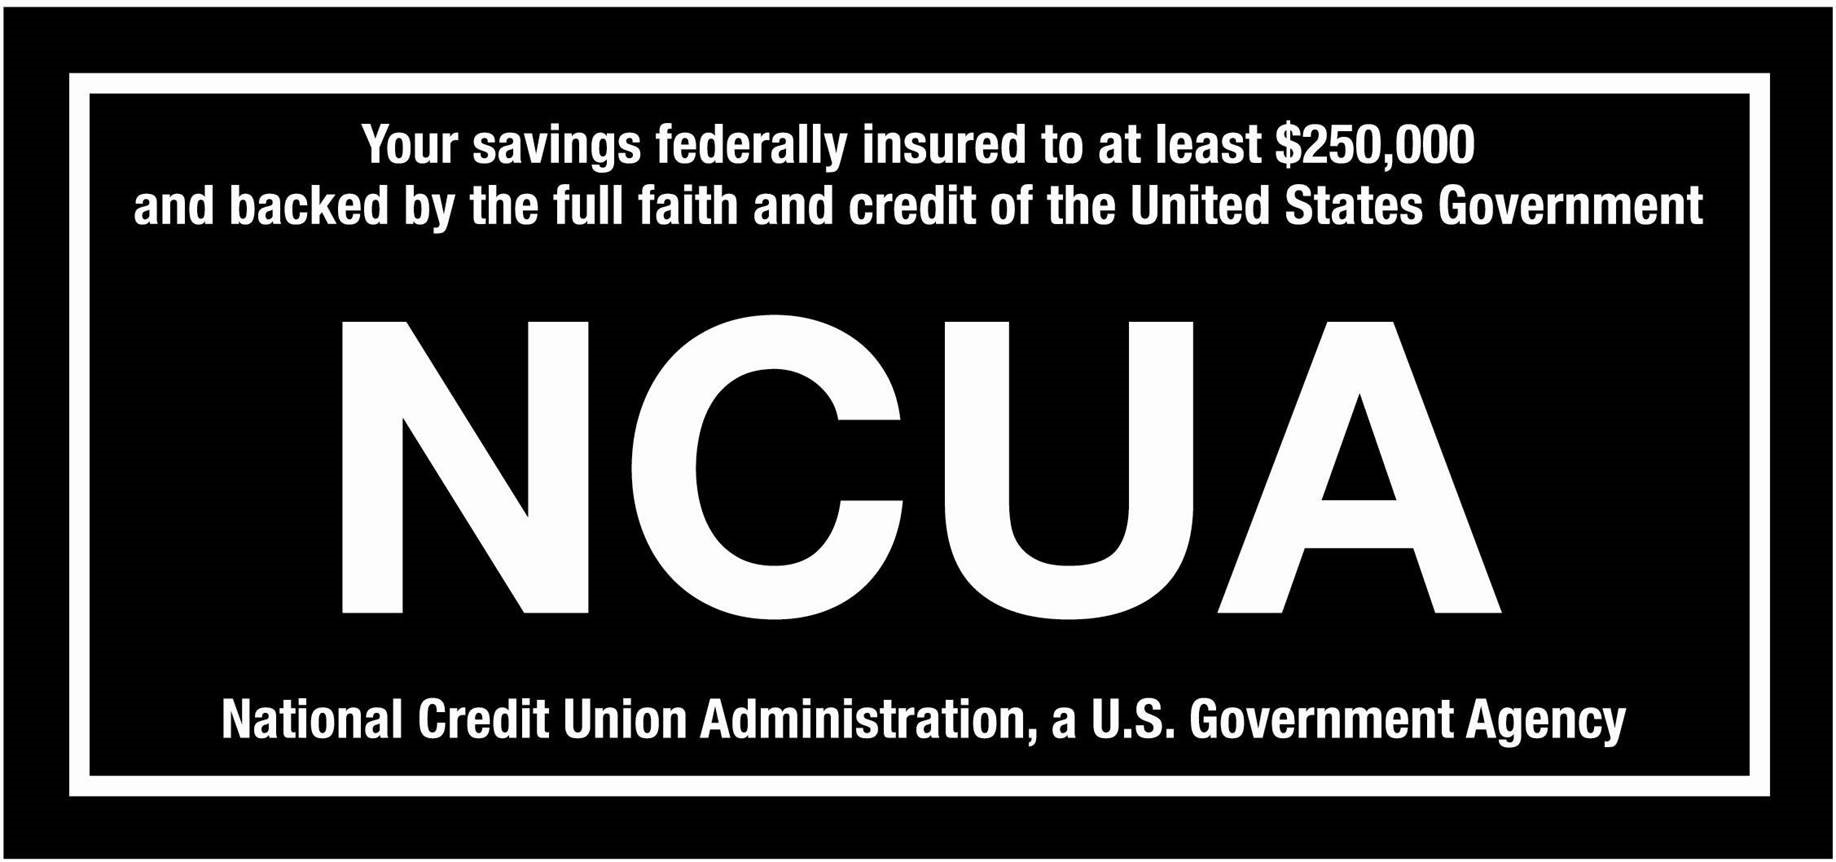 """Your savings are federally insured to at least $250,000 and backed by the full faith and credit of the United States Government.  National Credit Union Administration (NCUA), a U.S. Government Agency"""